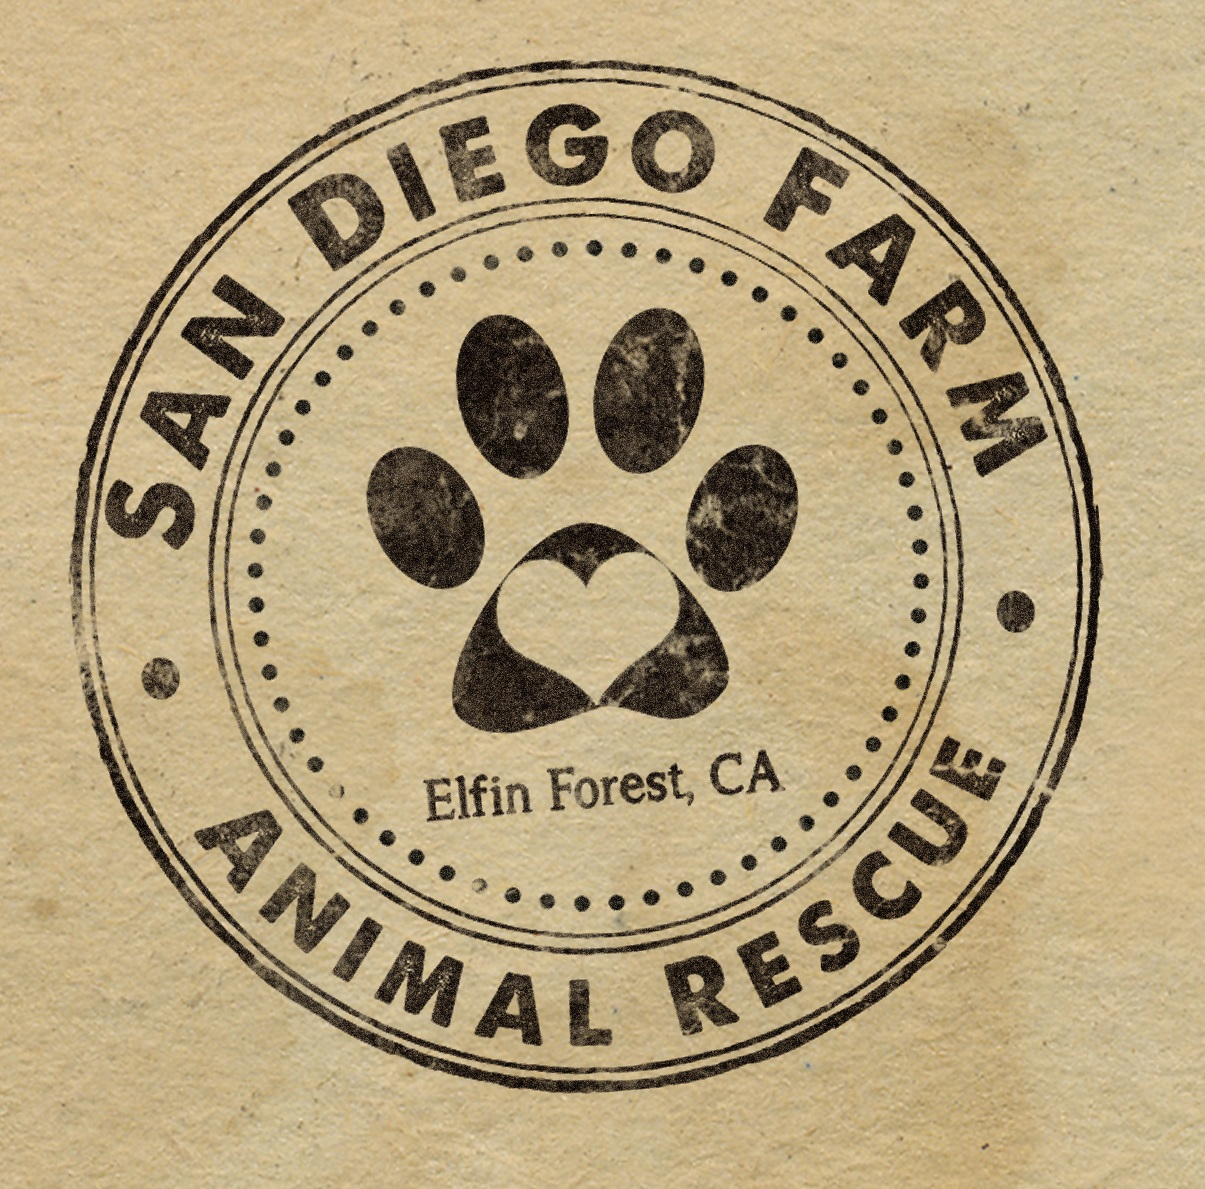 San Diego Farm Animal Rescue